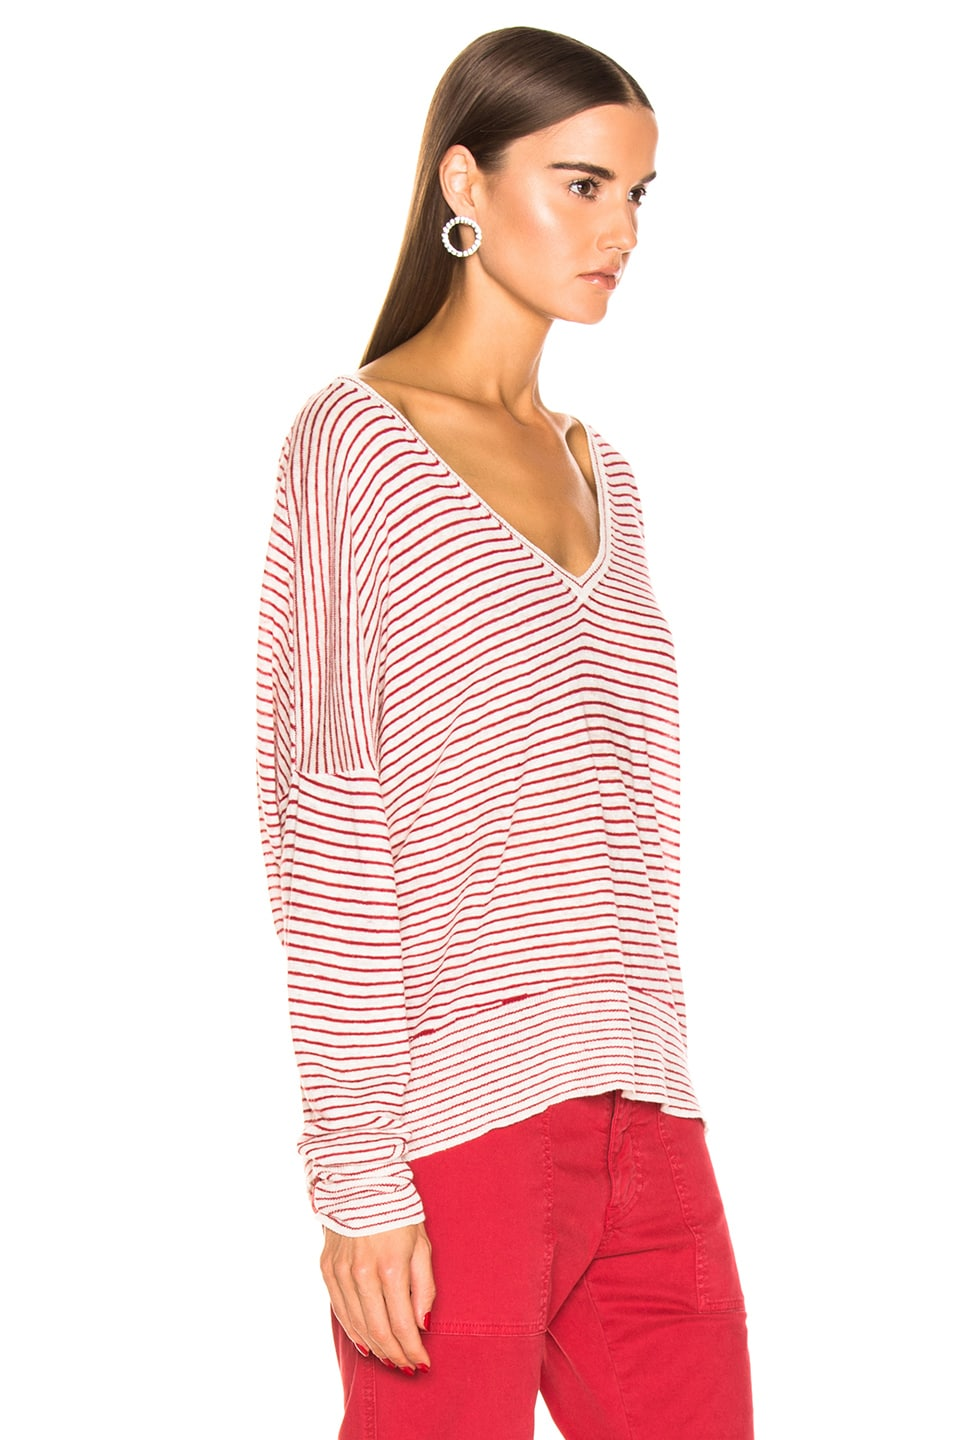 Image 3 of NILI LOTAN Maggie Sweater in Ivory & Red Stripe